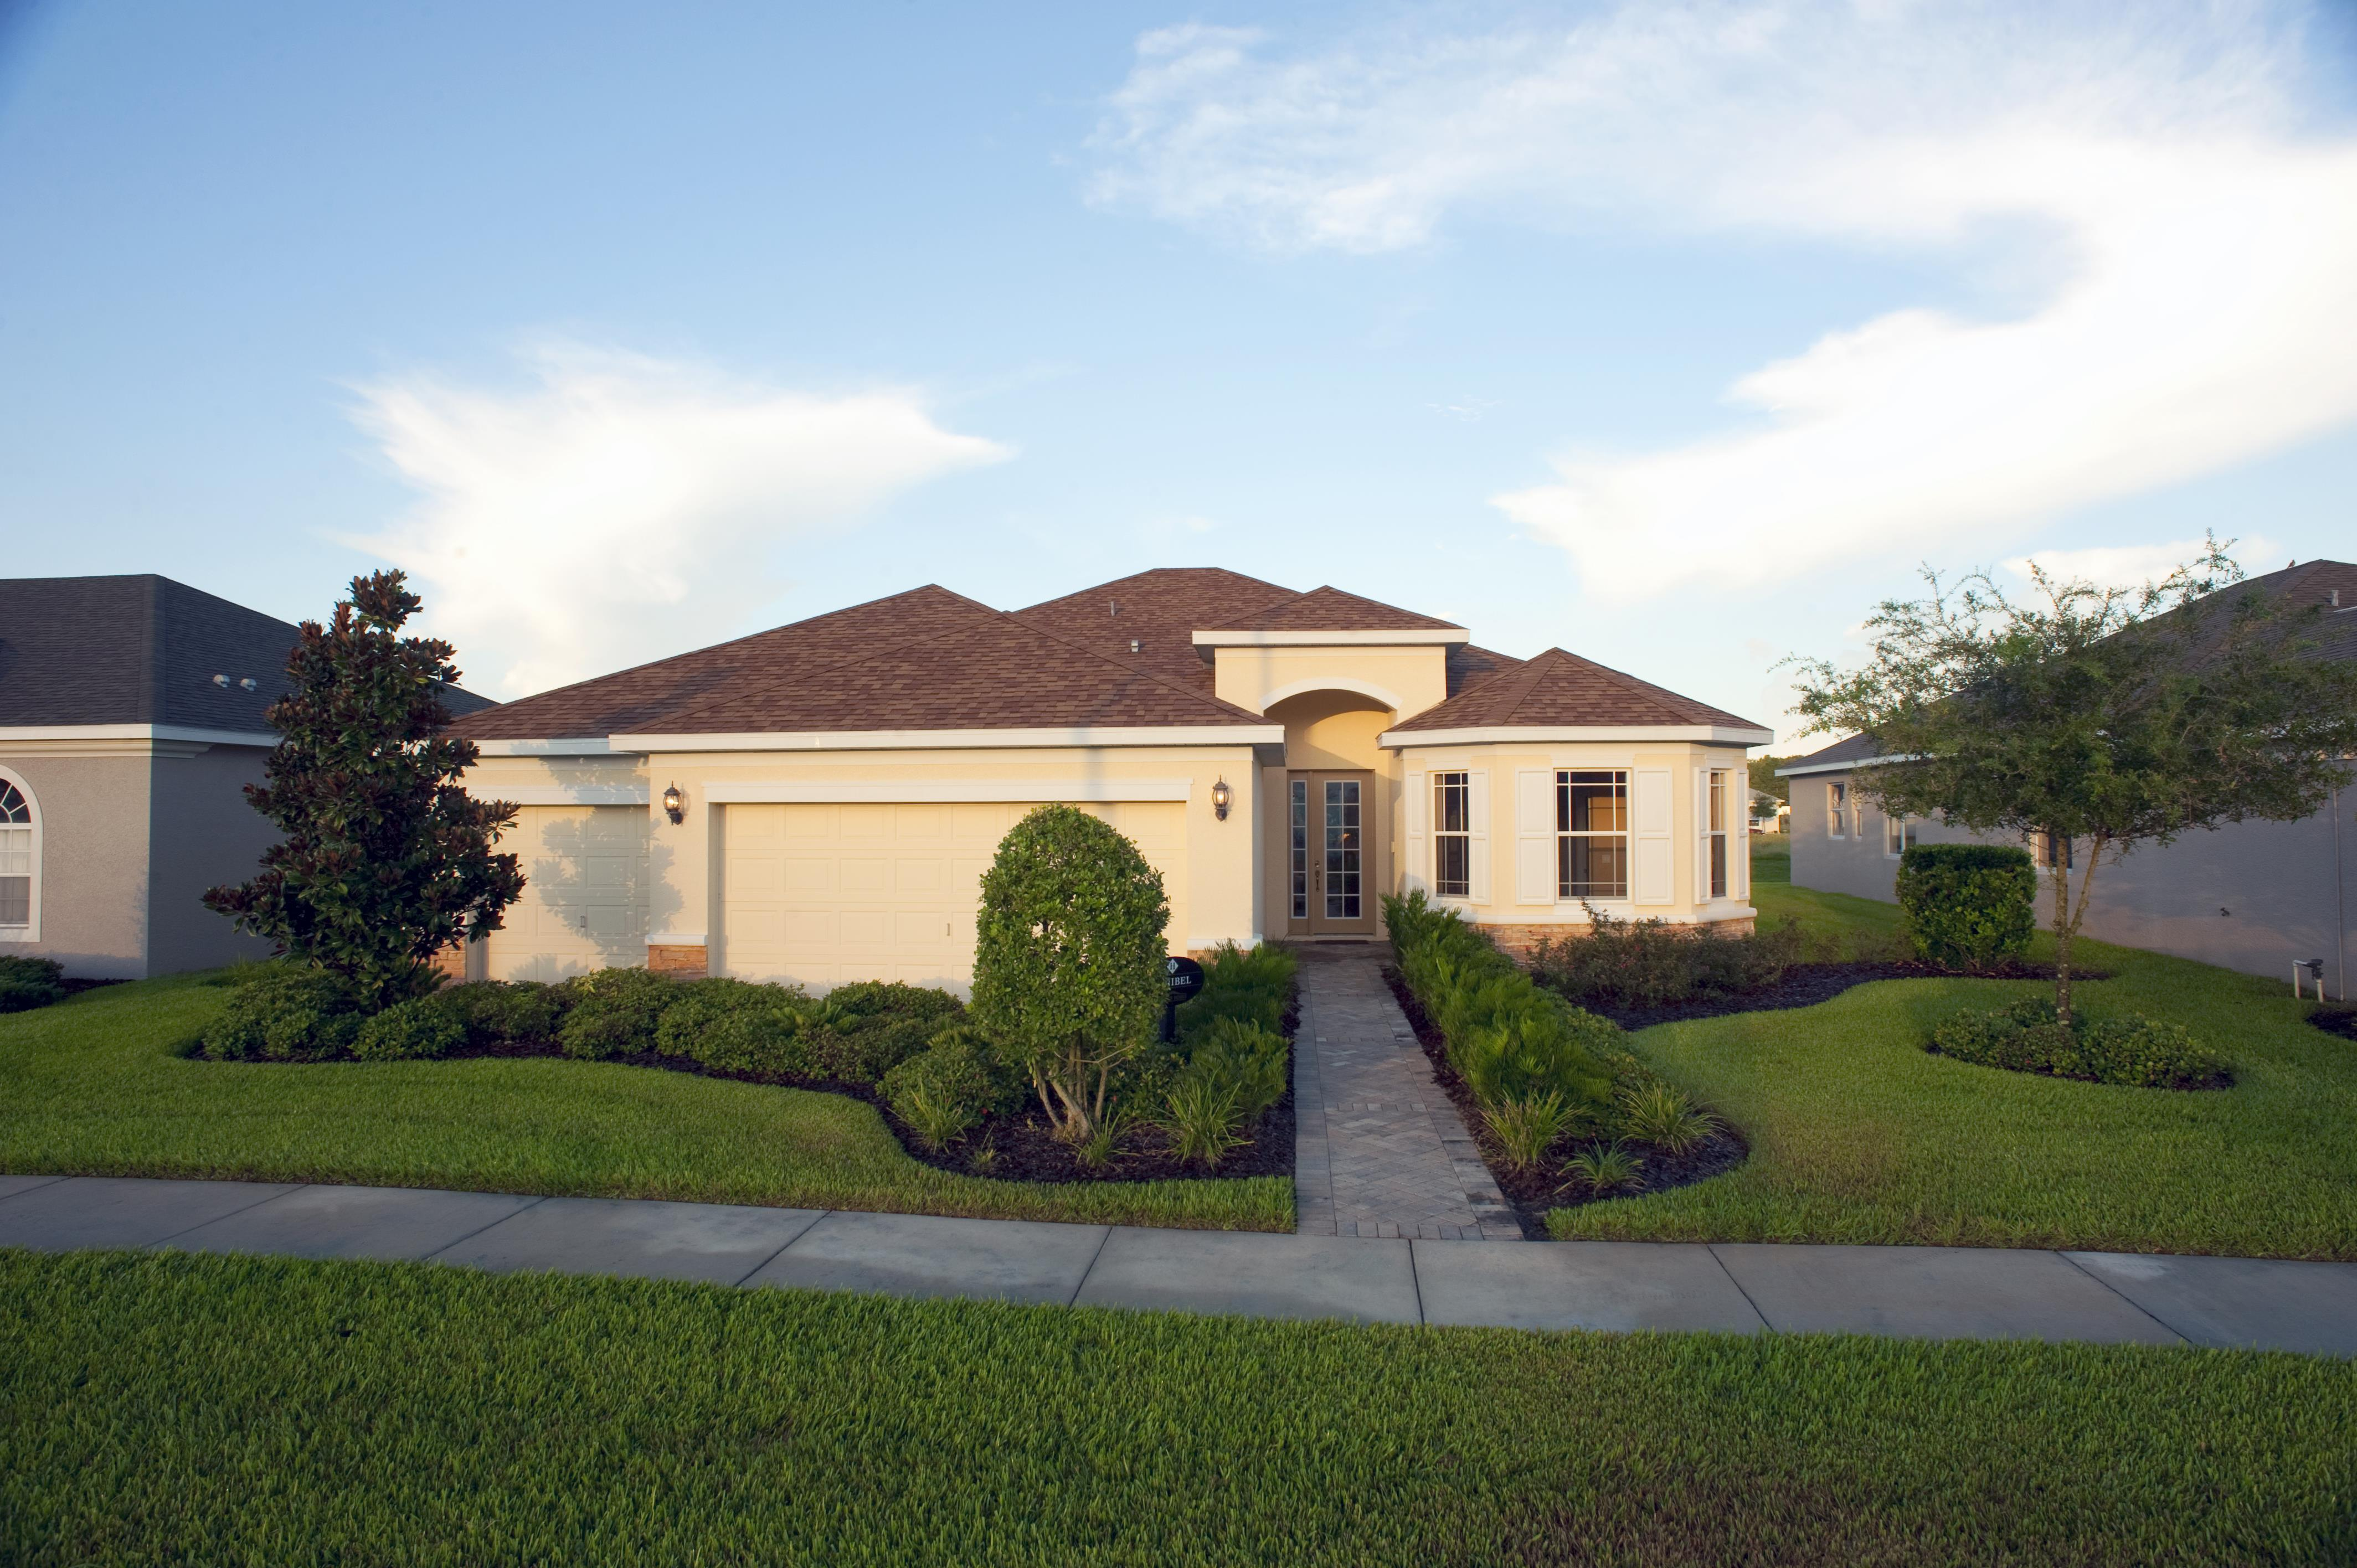 New Homes Tampa Bay Florida Pioneer Homes